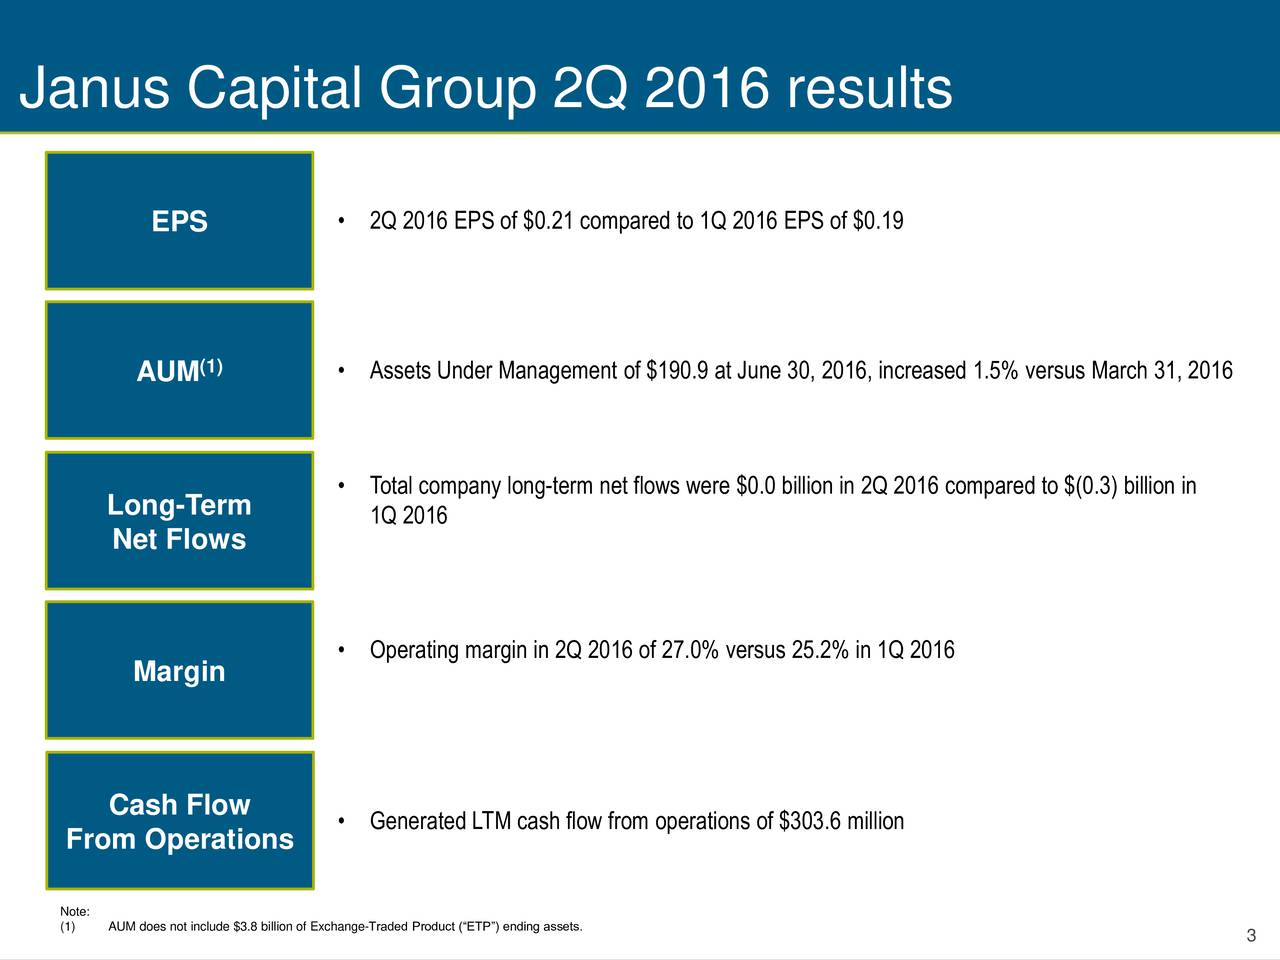 EPS  2Q 2016 EPS of $0.21 compared to 1Q 2016 EPS of $0.19 AUM (1)  Assets Under Management of $190.9 at June 30, 2016, increased 1.5% versus March 31, 2016 Total company long-term net flows were $0.0 billion in 2Q 2016 compared to $(0.3) billion in Long-Term 1Q 2016 Net Flows Operating margin in 2Q 2016 of 27.0% versus 25.2% in 1Q 2016 Margin Cash Flow From Operations  Generated LTM cash flow from operations of $303.6 million Note: (1) AUM does not include $3.8 billion of Exchange-Traded Product (ETP) ending assets. 3